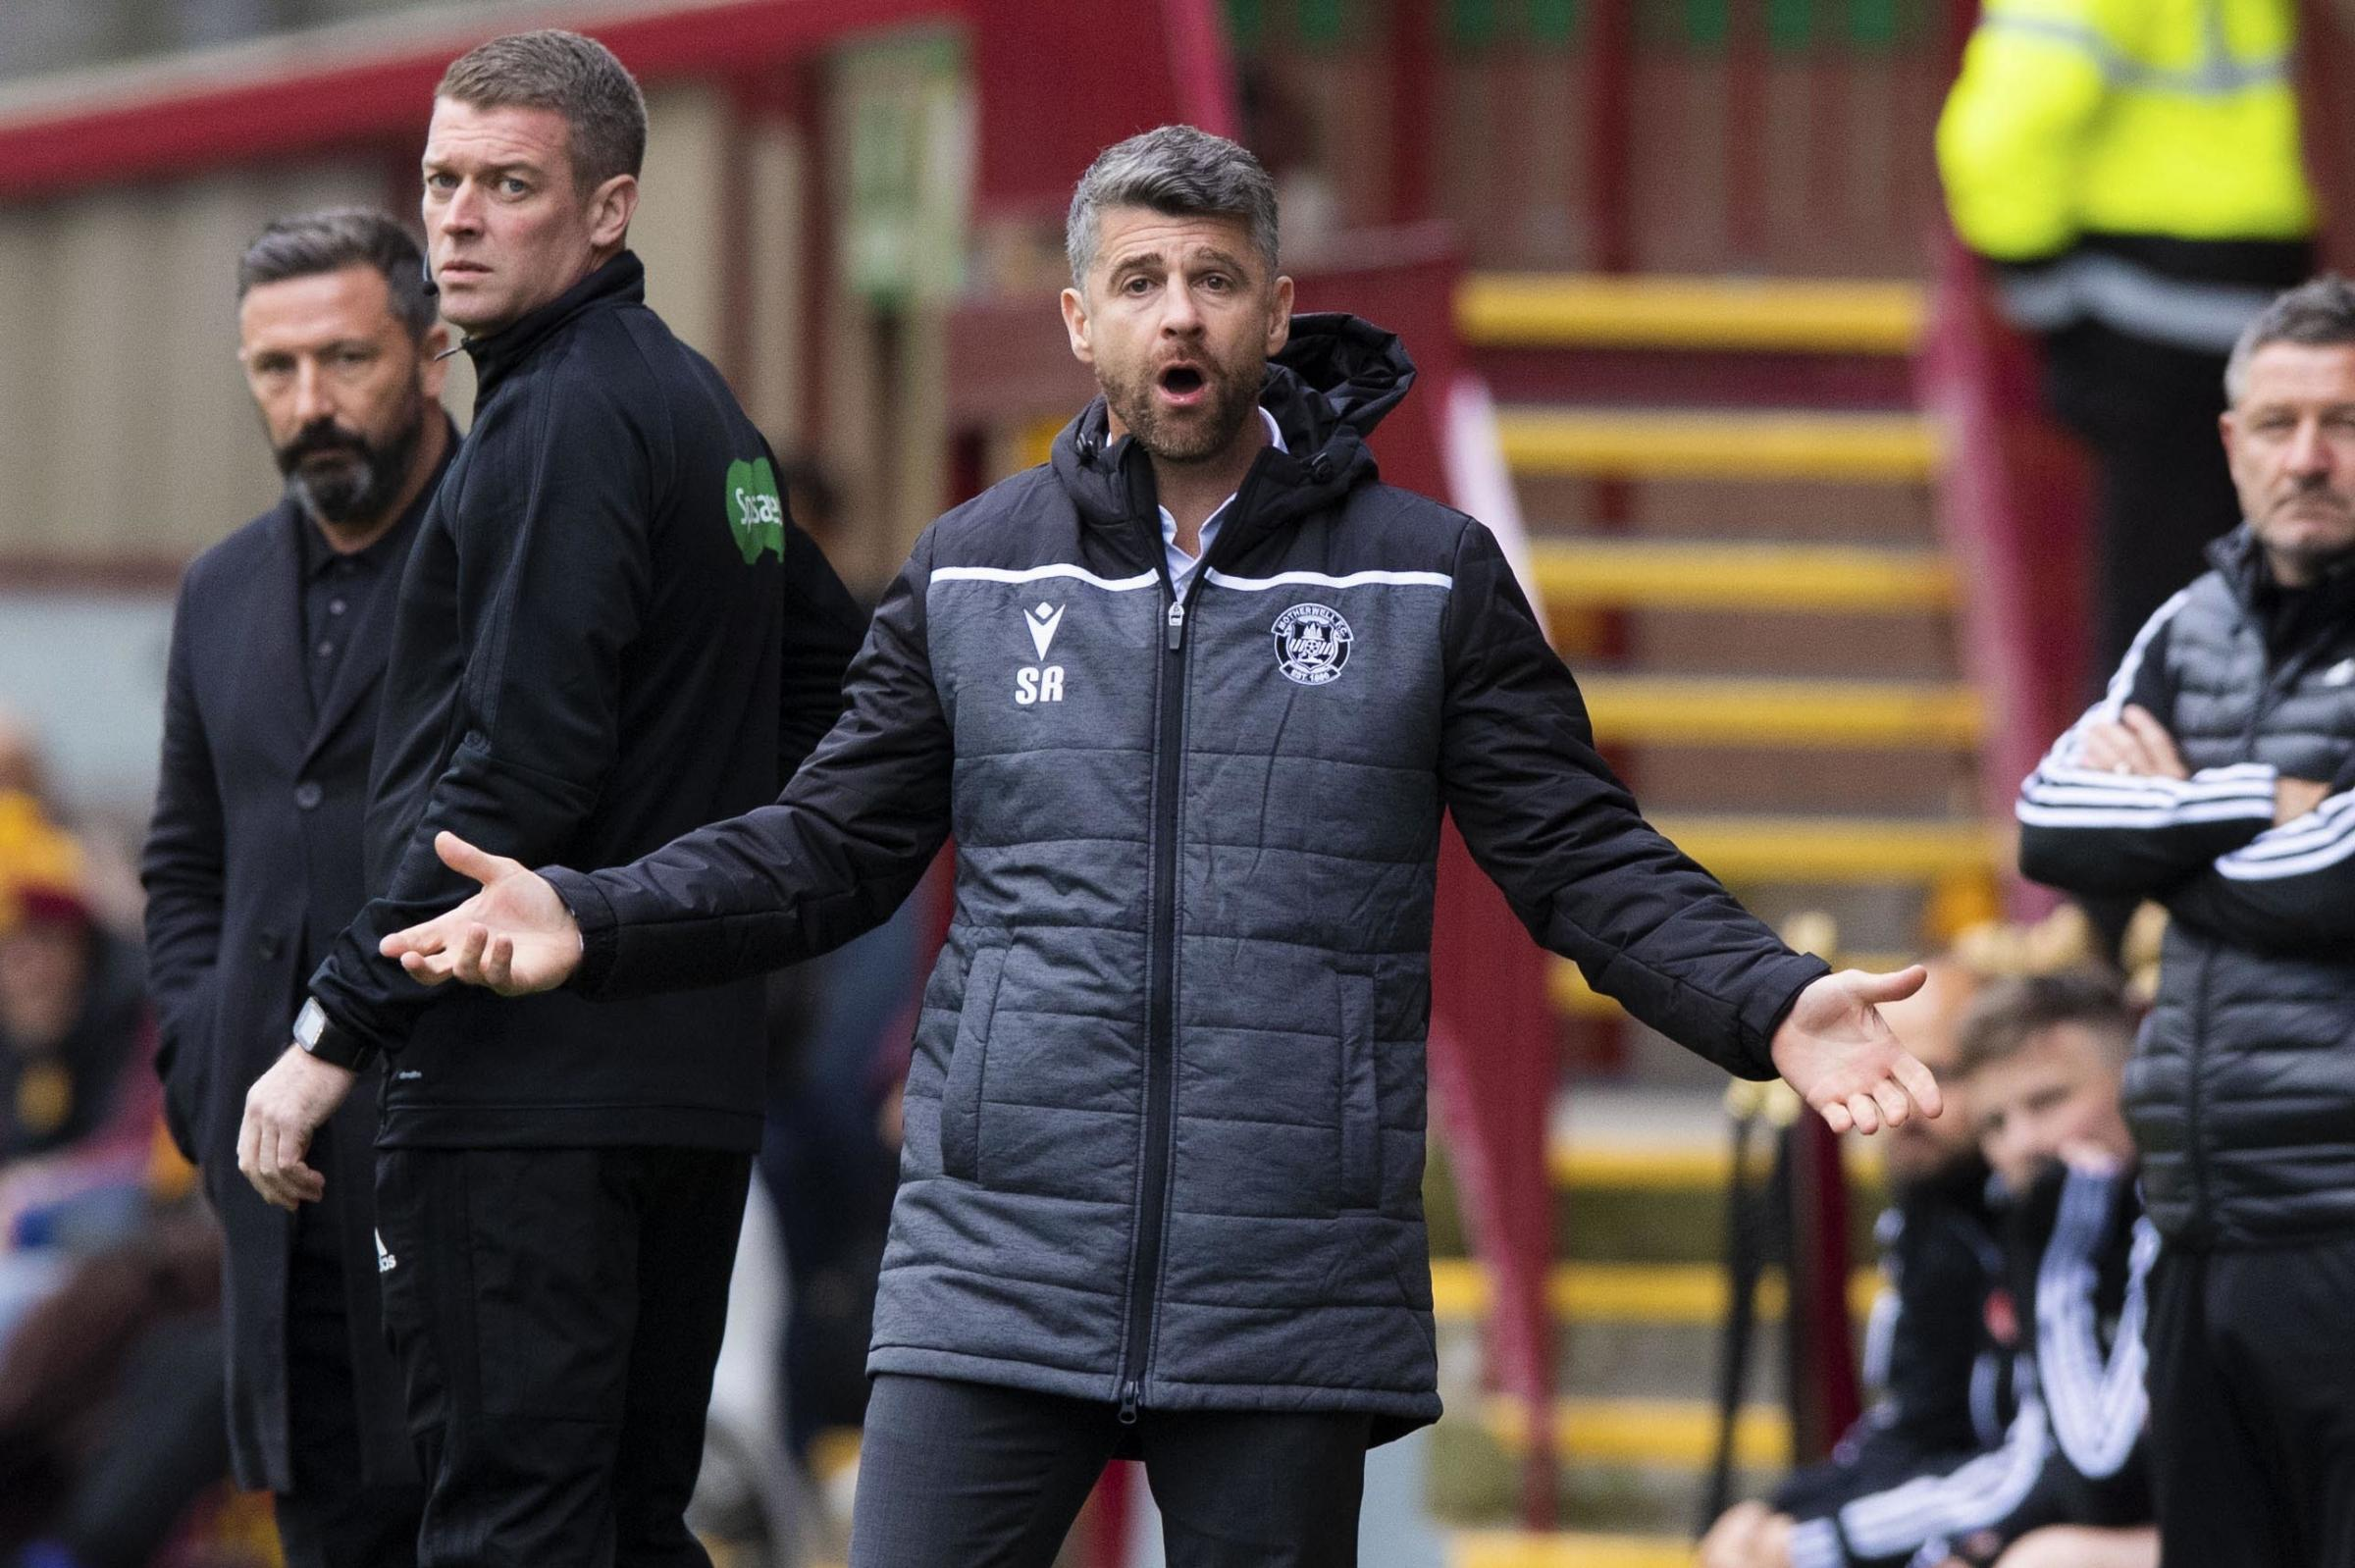 Stephen Robinson and Jack Ross early front runners for Hearts vacancy after Craig Levein sacking